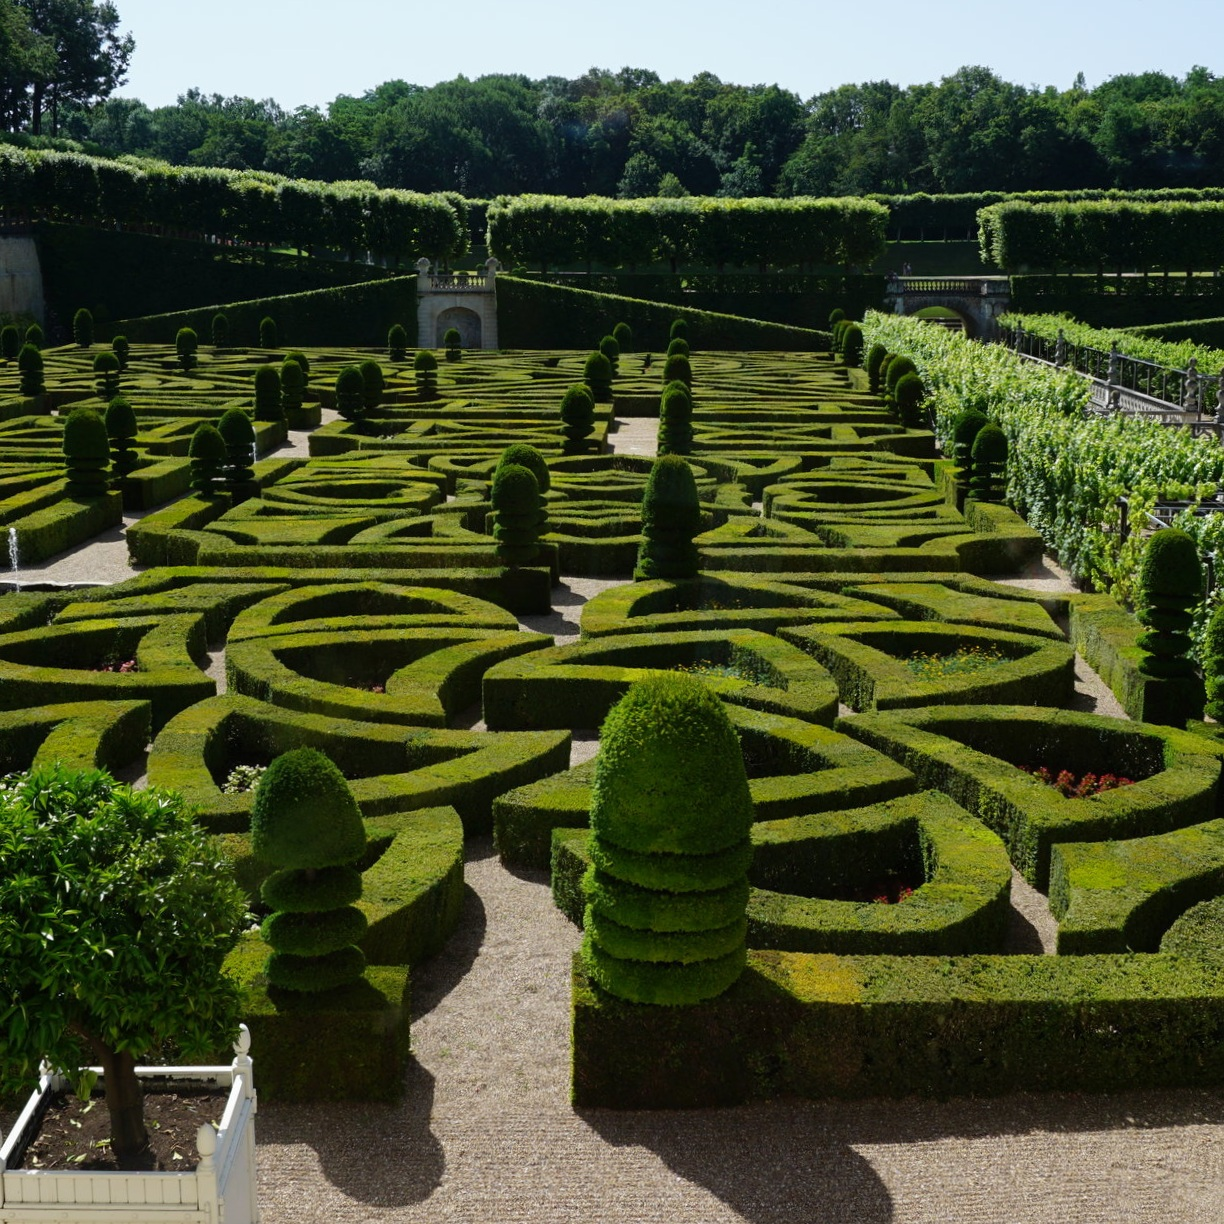 An impressive boxwood maze in a formal garden in France.